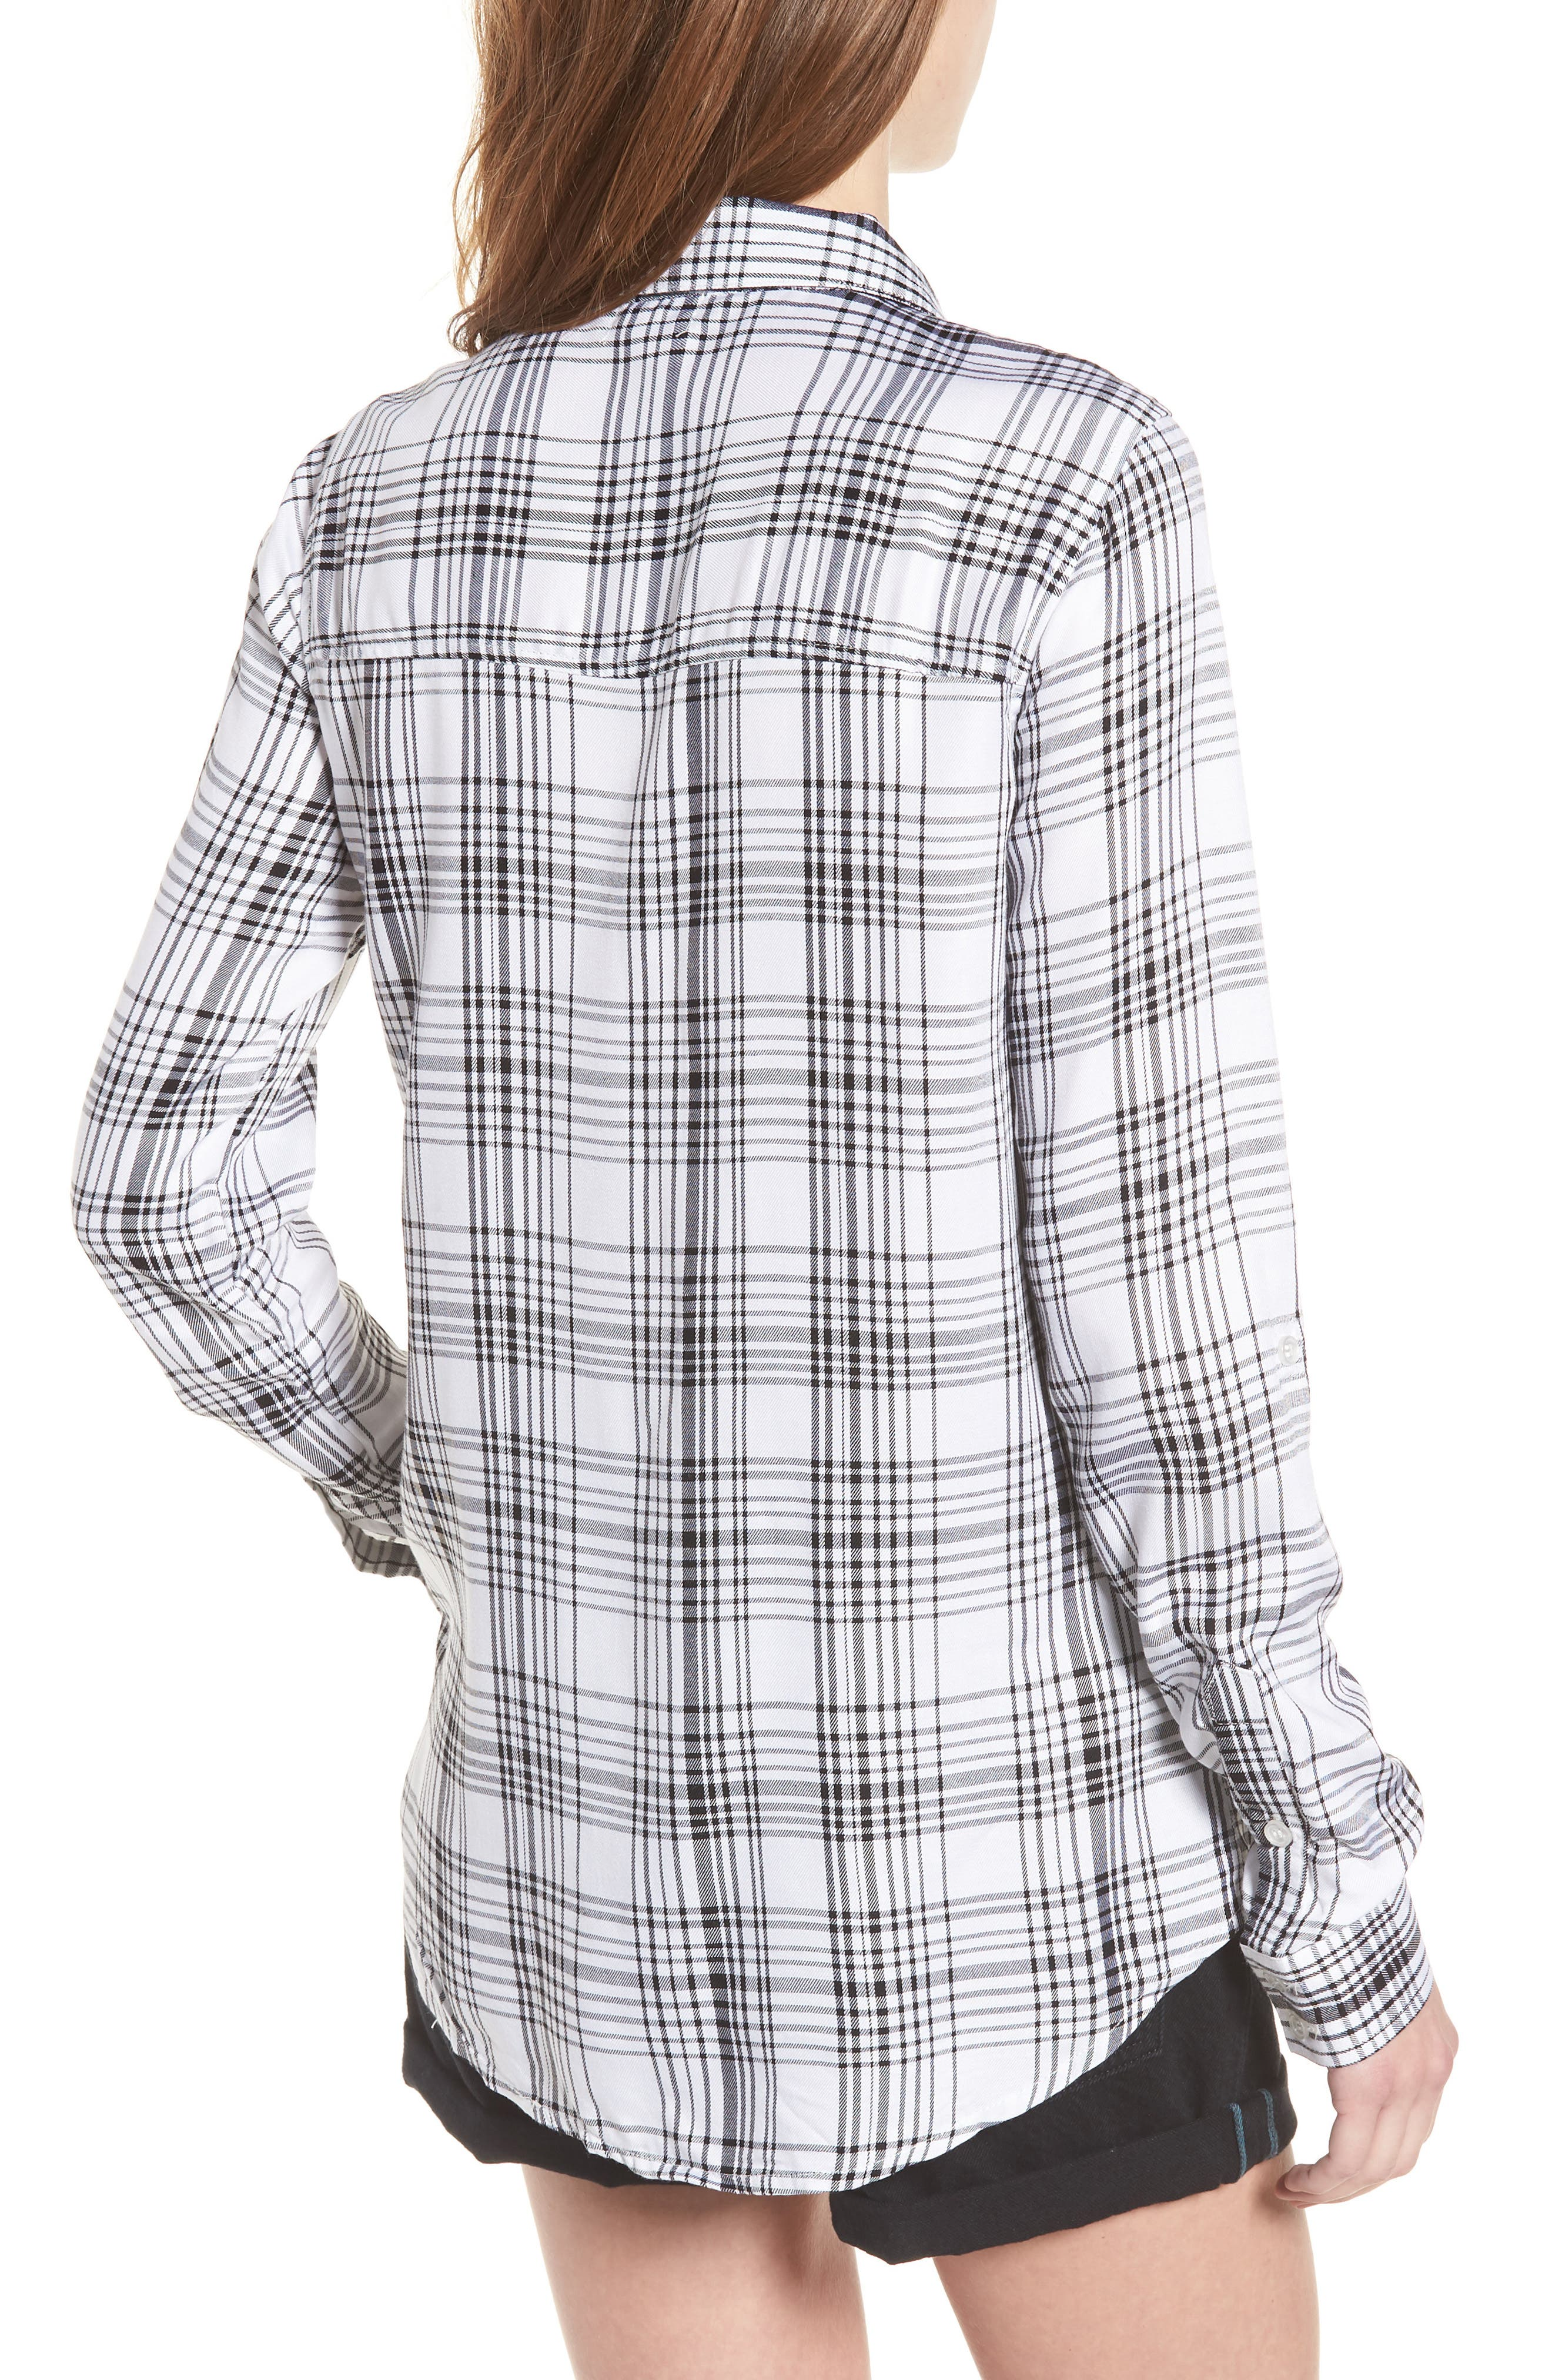 Roll-Tab Shirt,                             Alternate thumbnail 2, color,                             Black White Plaid